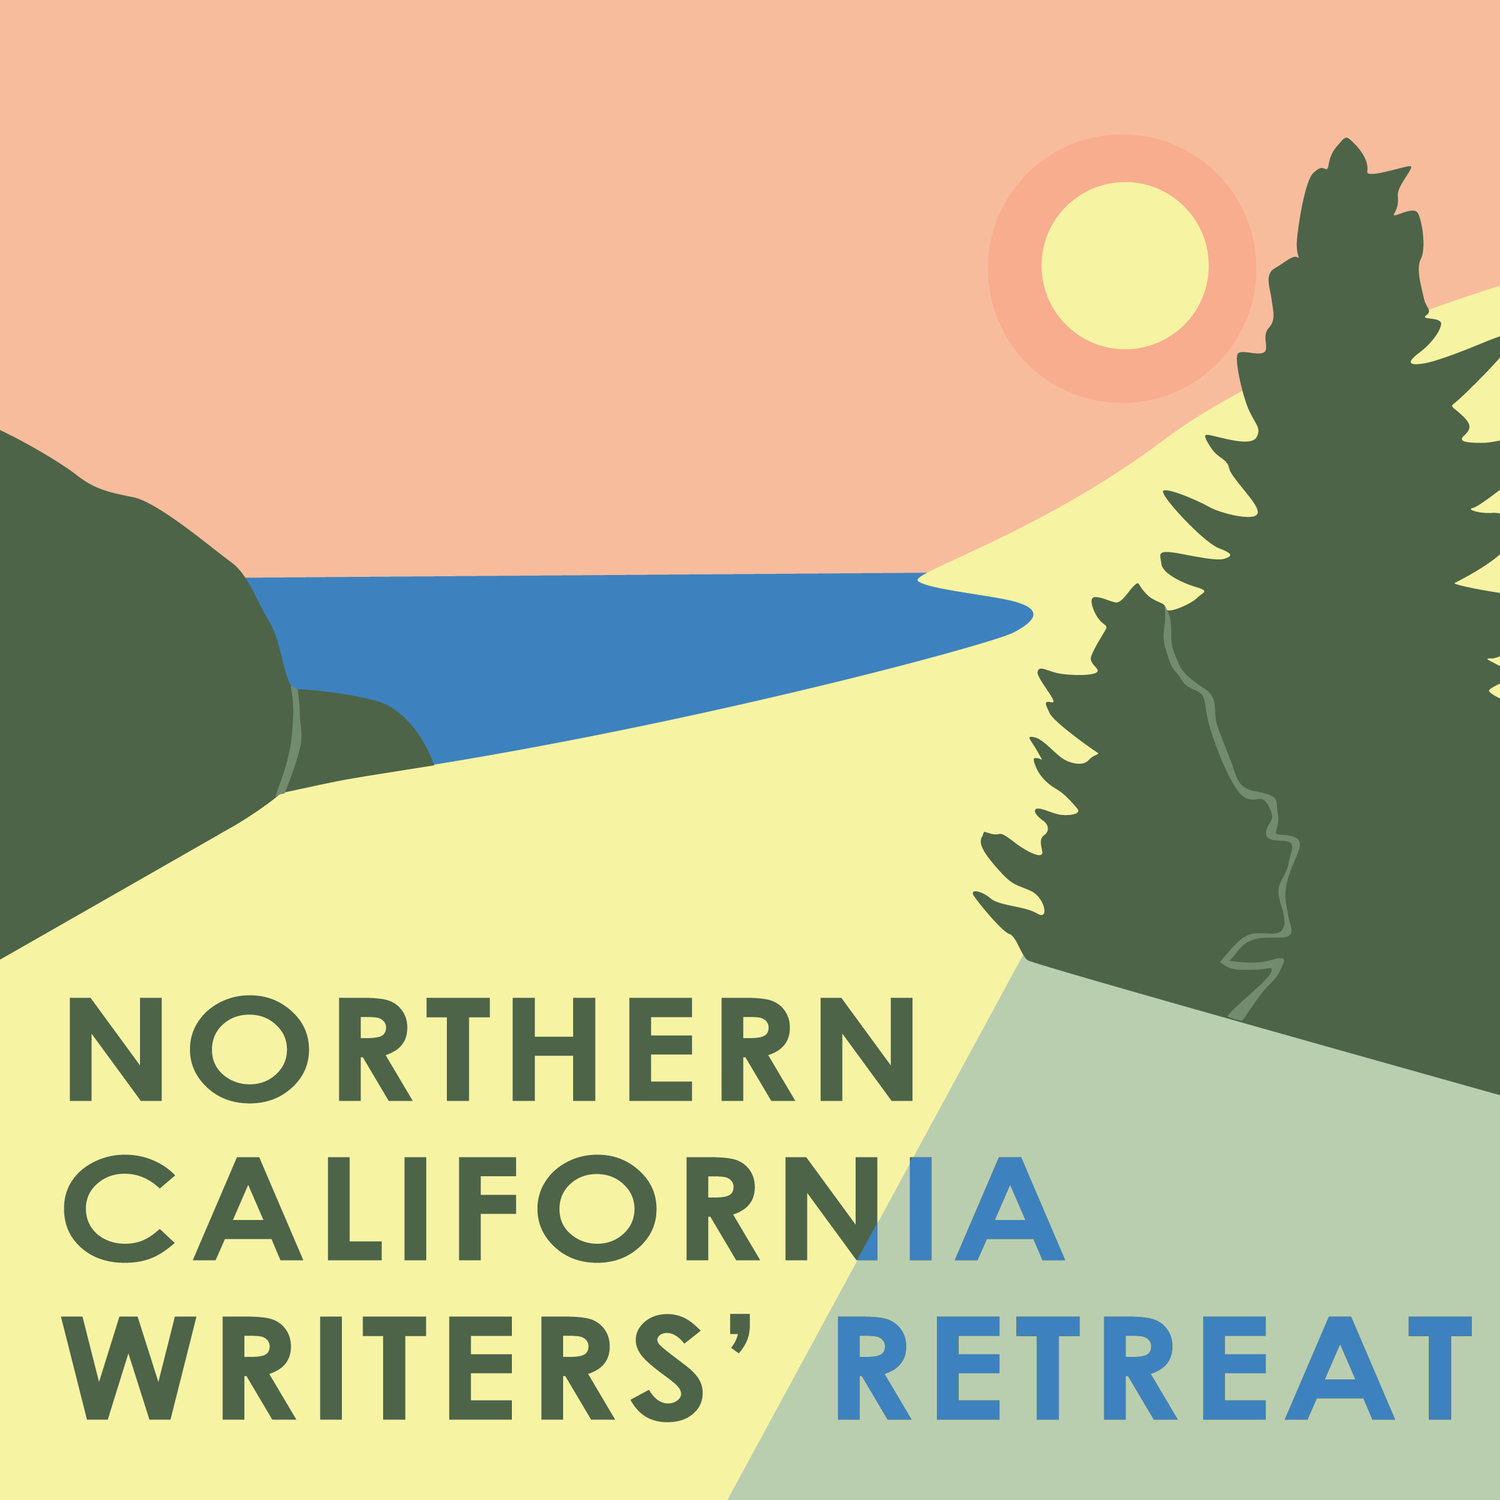 Northern California Writers' Retreat